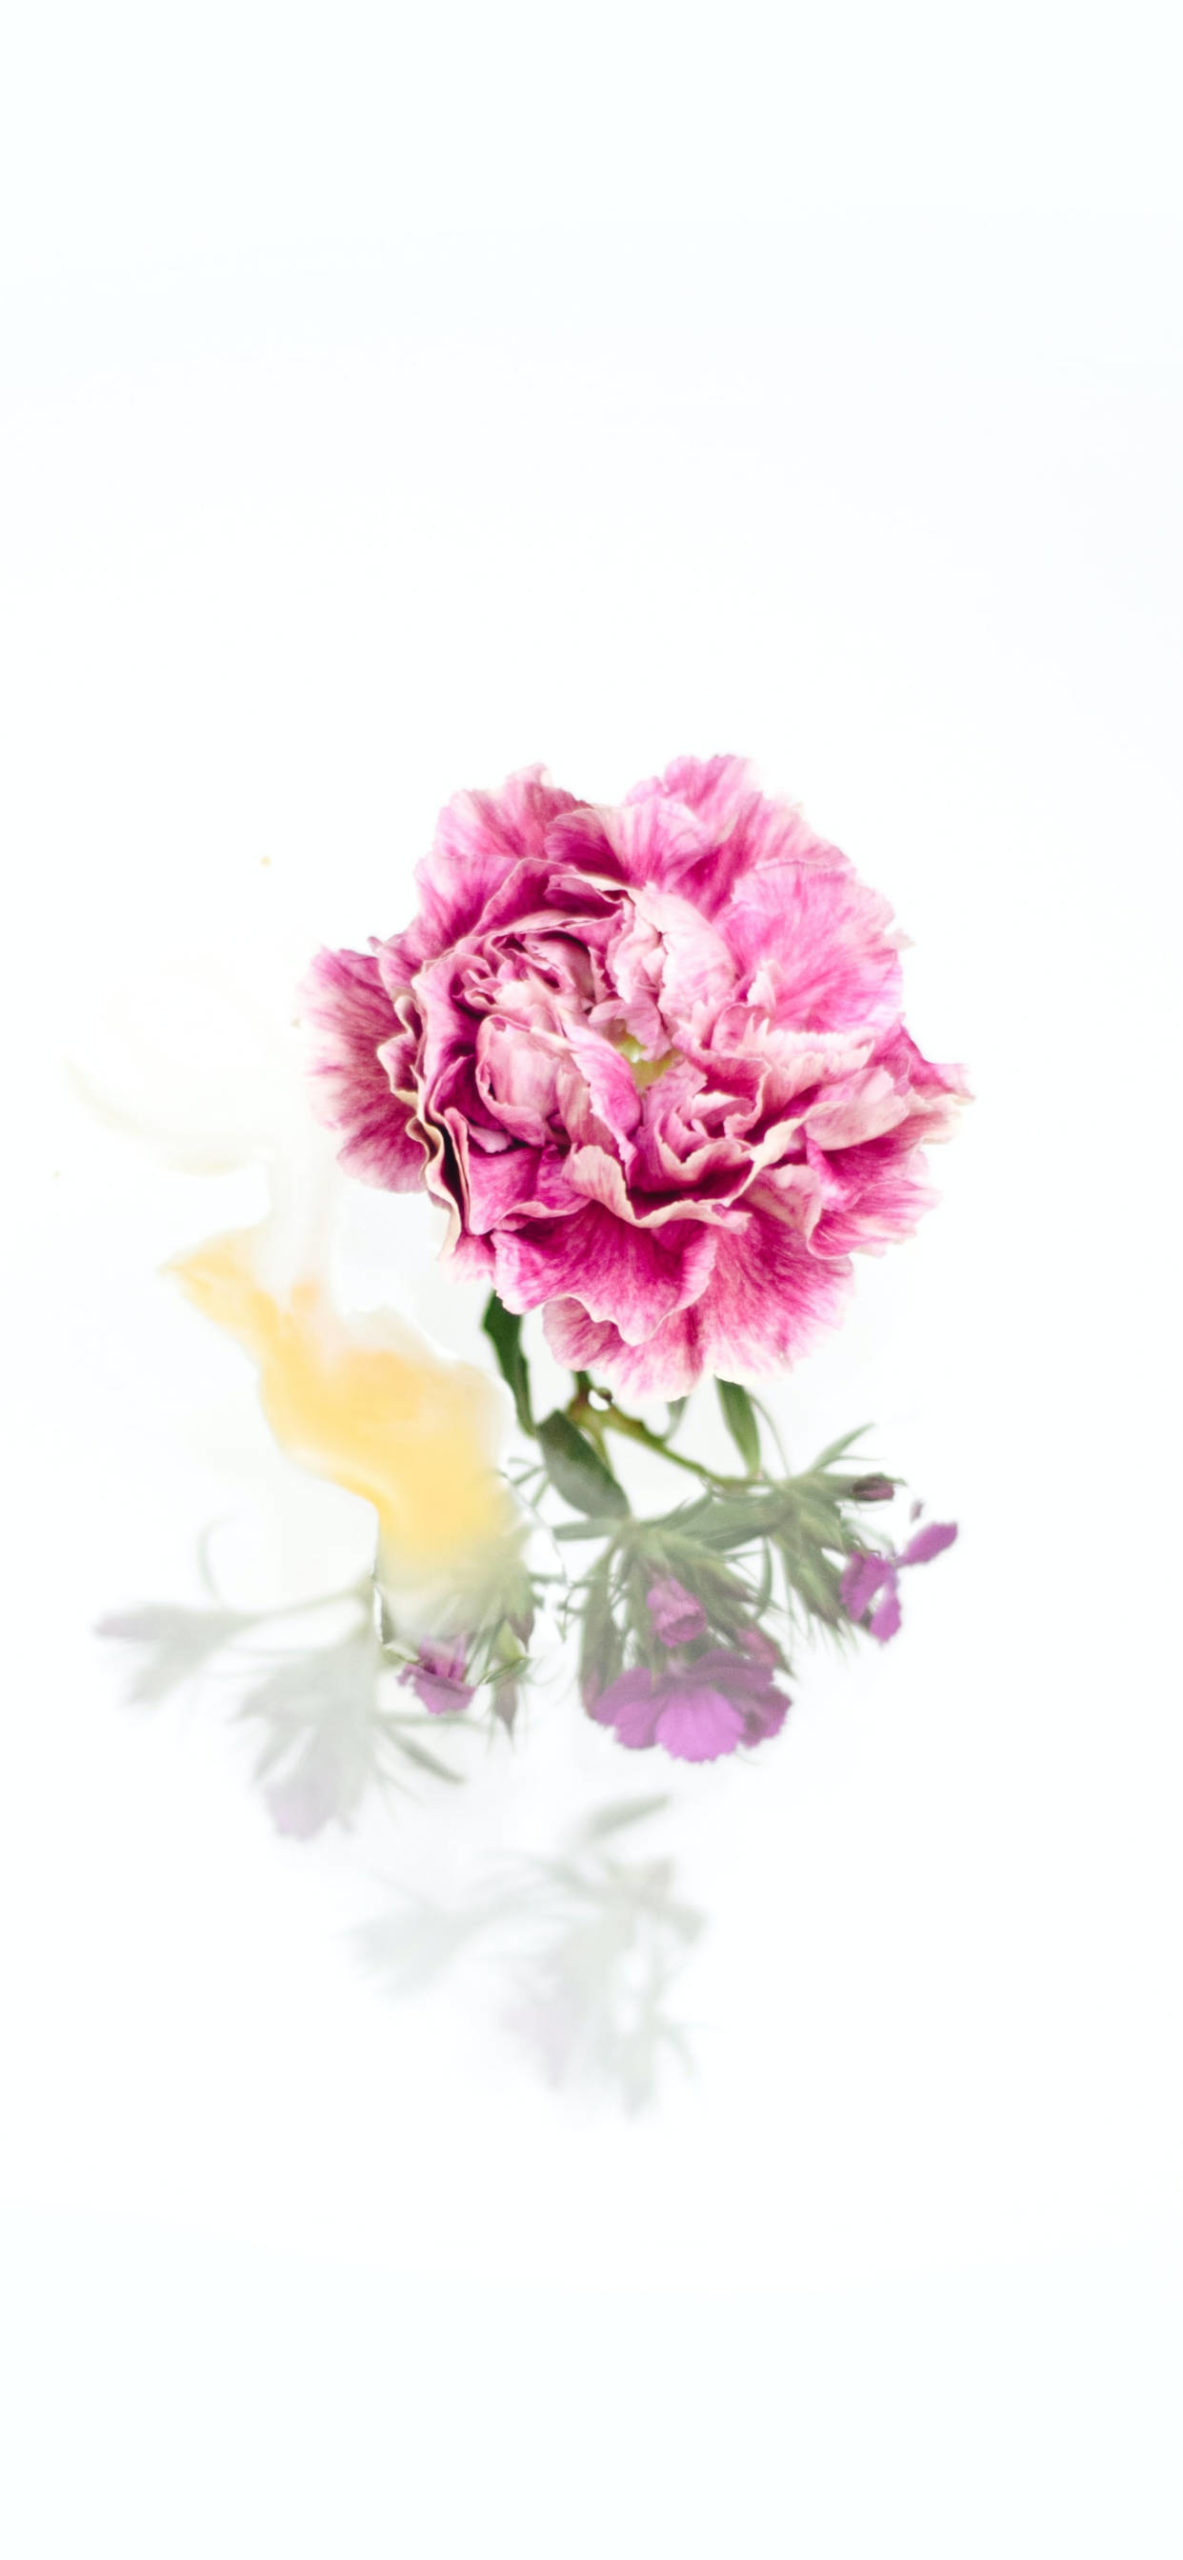 iPhone wallpapers flowers pink purple scaled Flowers